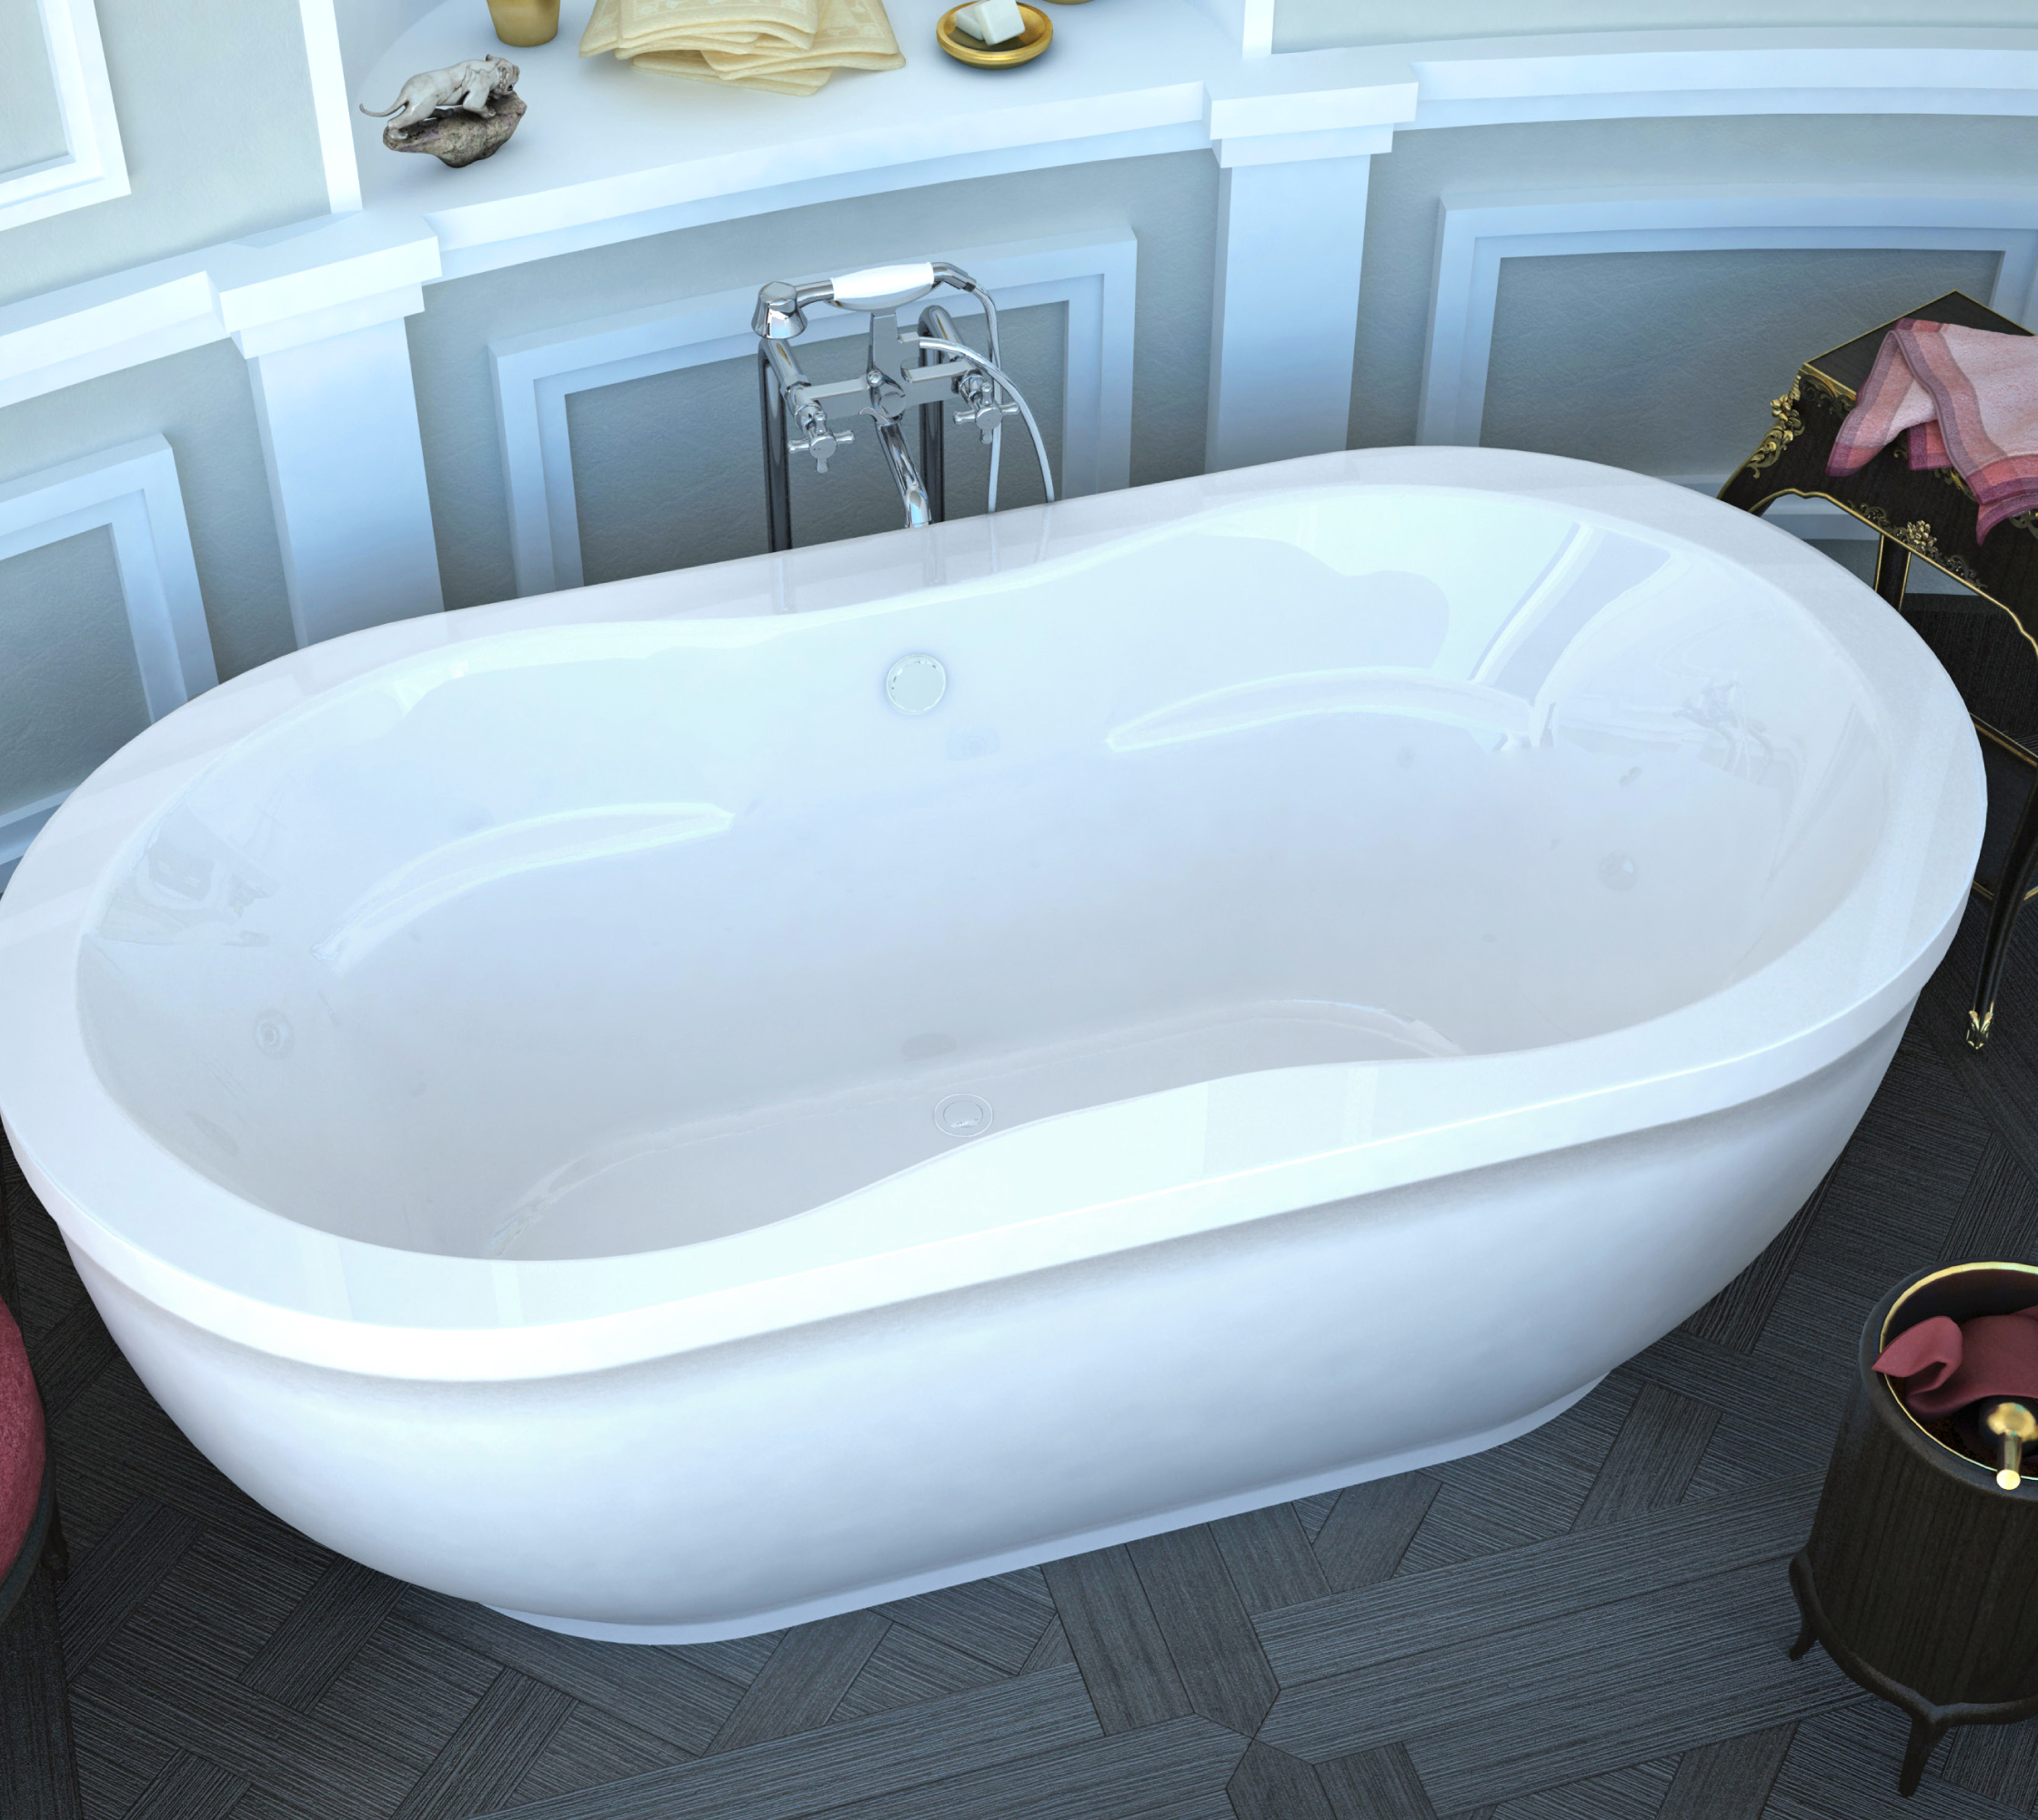 Venzi Velia 71 x 34 x 23 Oval Freestanding Bathtub with Center Drain